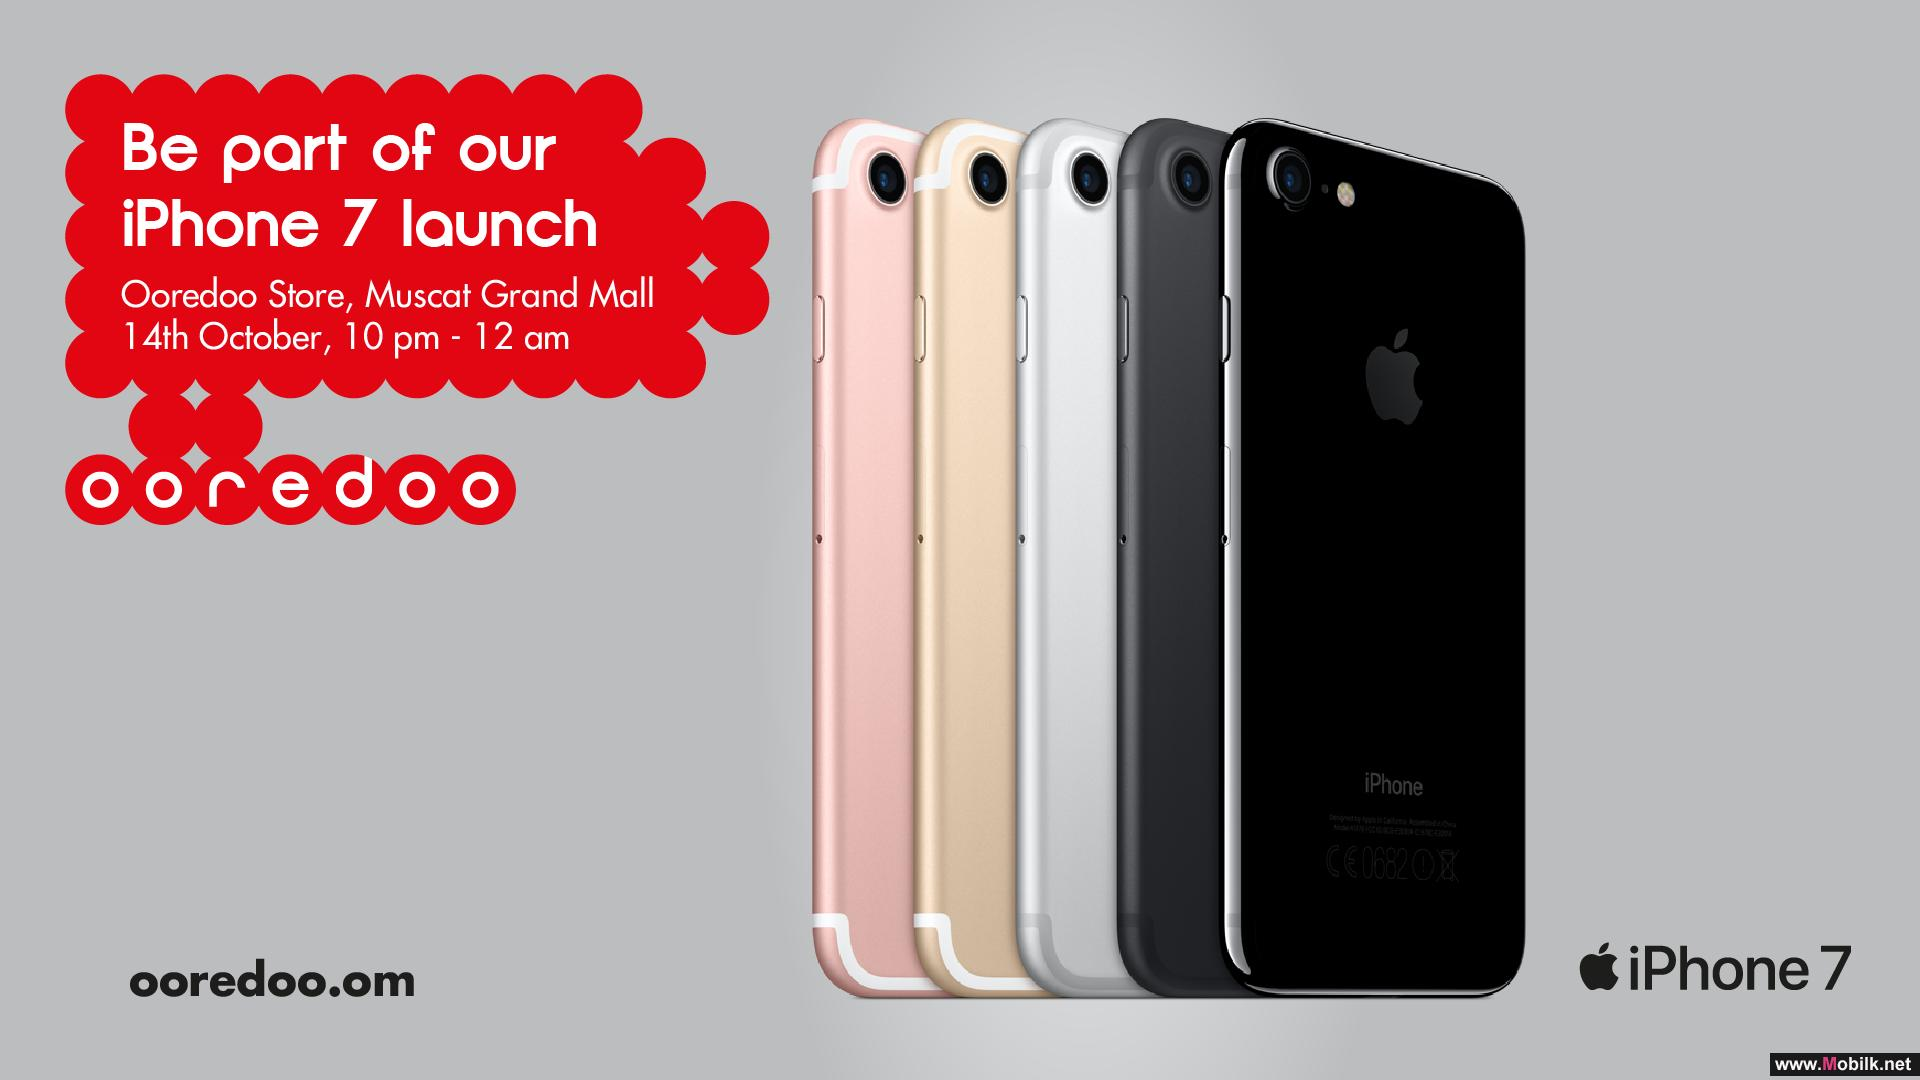 Ooredoo to Hold Launch of the iPhone 7 in Oman